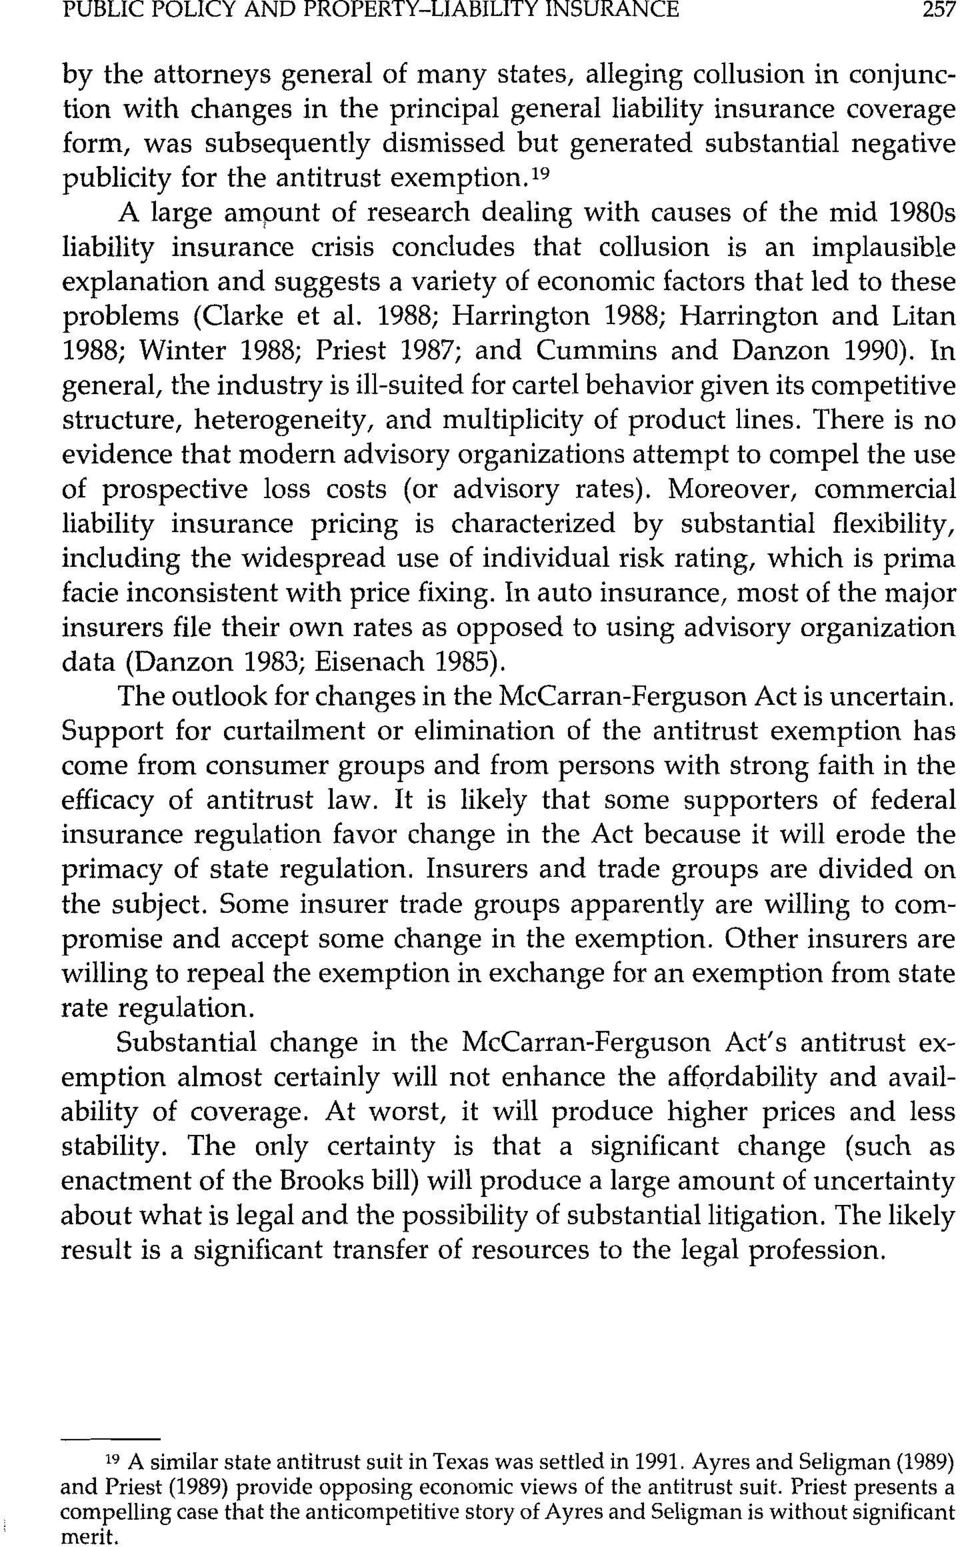 19 A large amount of research dealing with causes of the mid 1980s liability insurance crisis concludes that collusion is an implausible explanation and suggests a variety of economic factors that